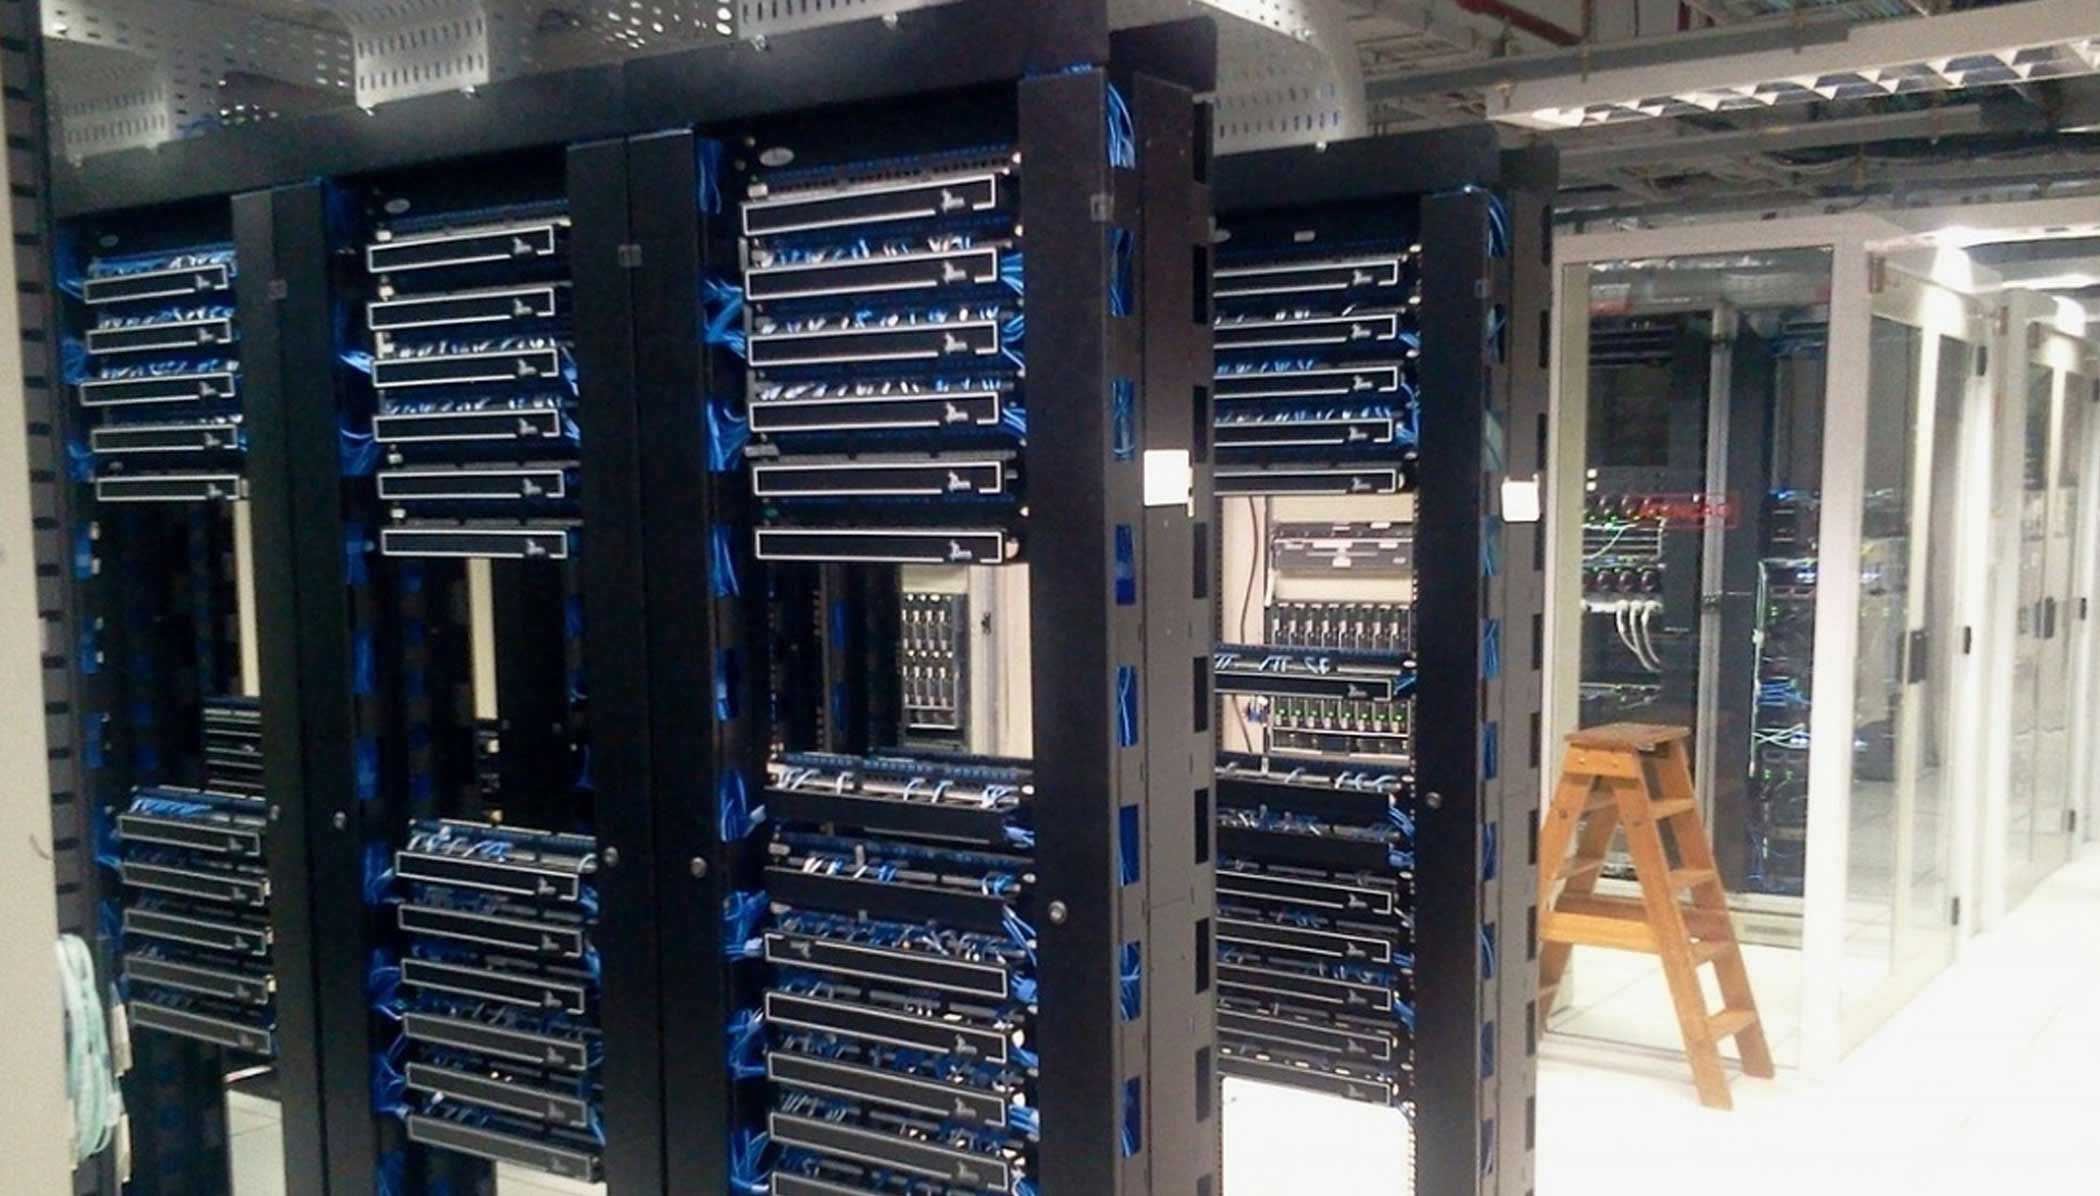 datacenter-286386_1280-146863-edited-1